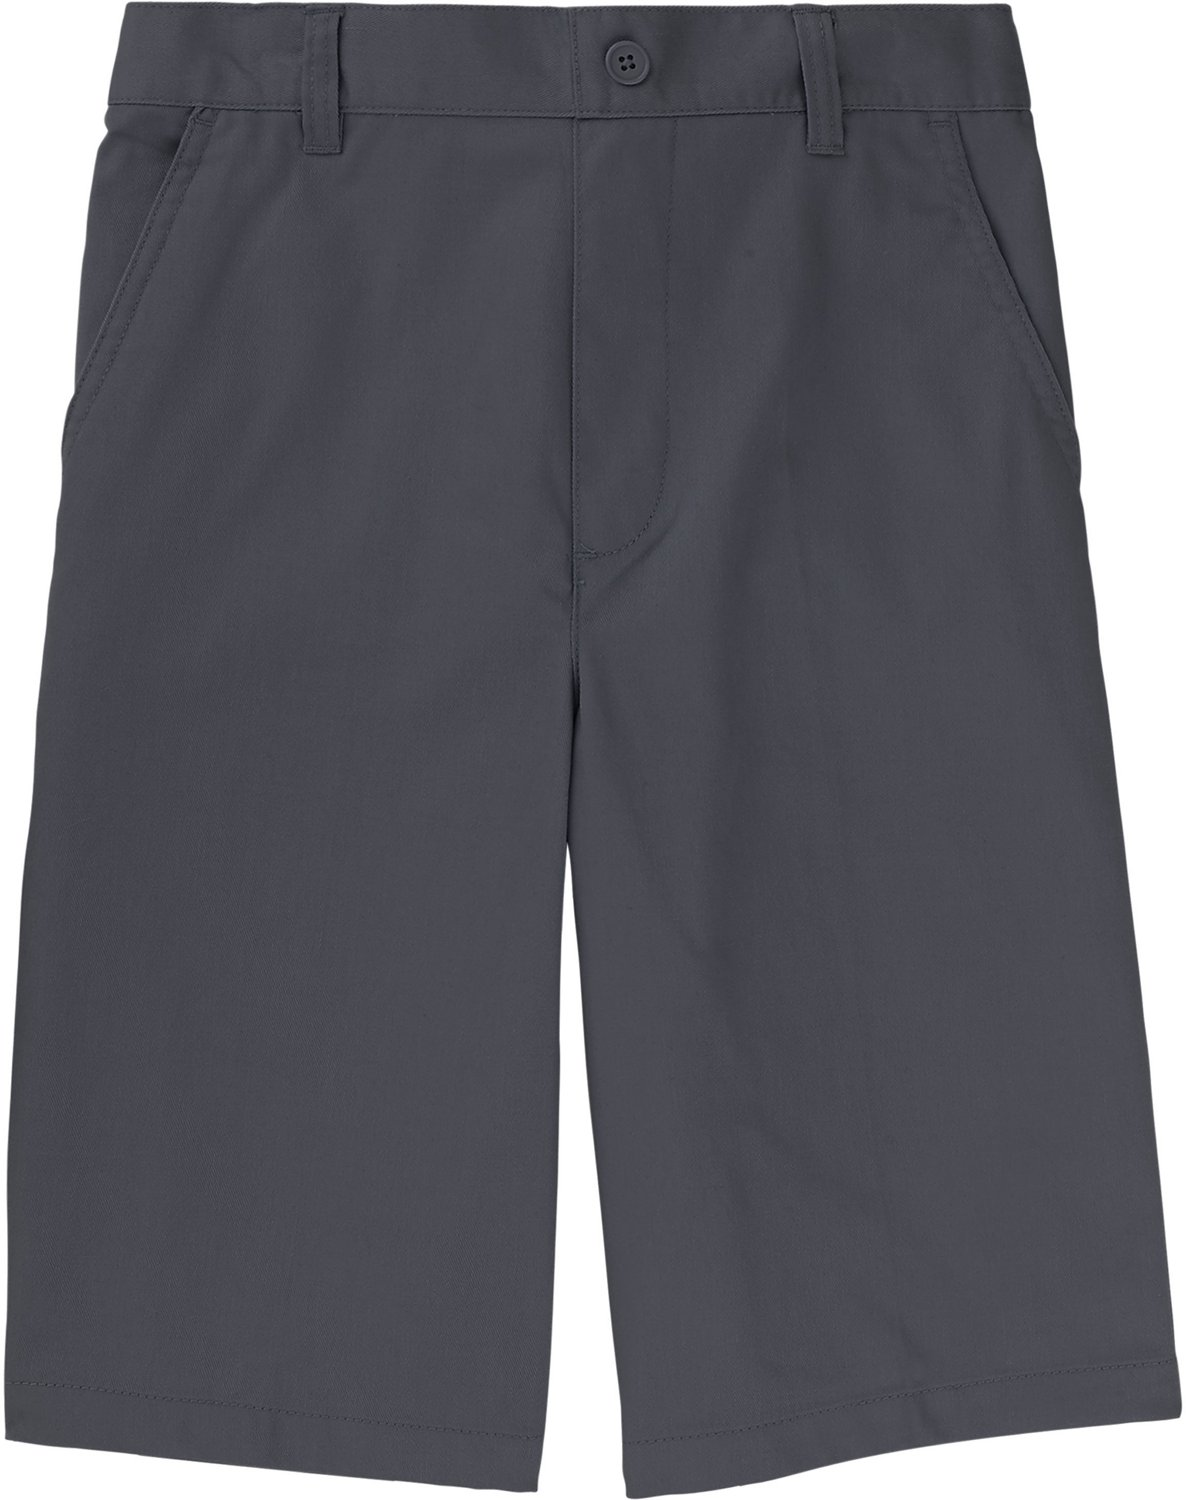 e826b147d29 Display product reviews for French Toast Boys' Pull-On Short